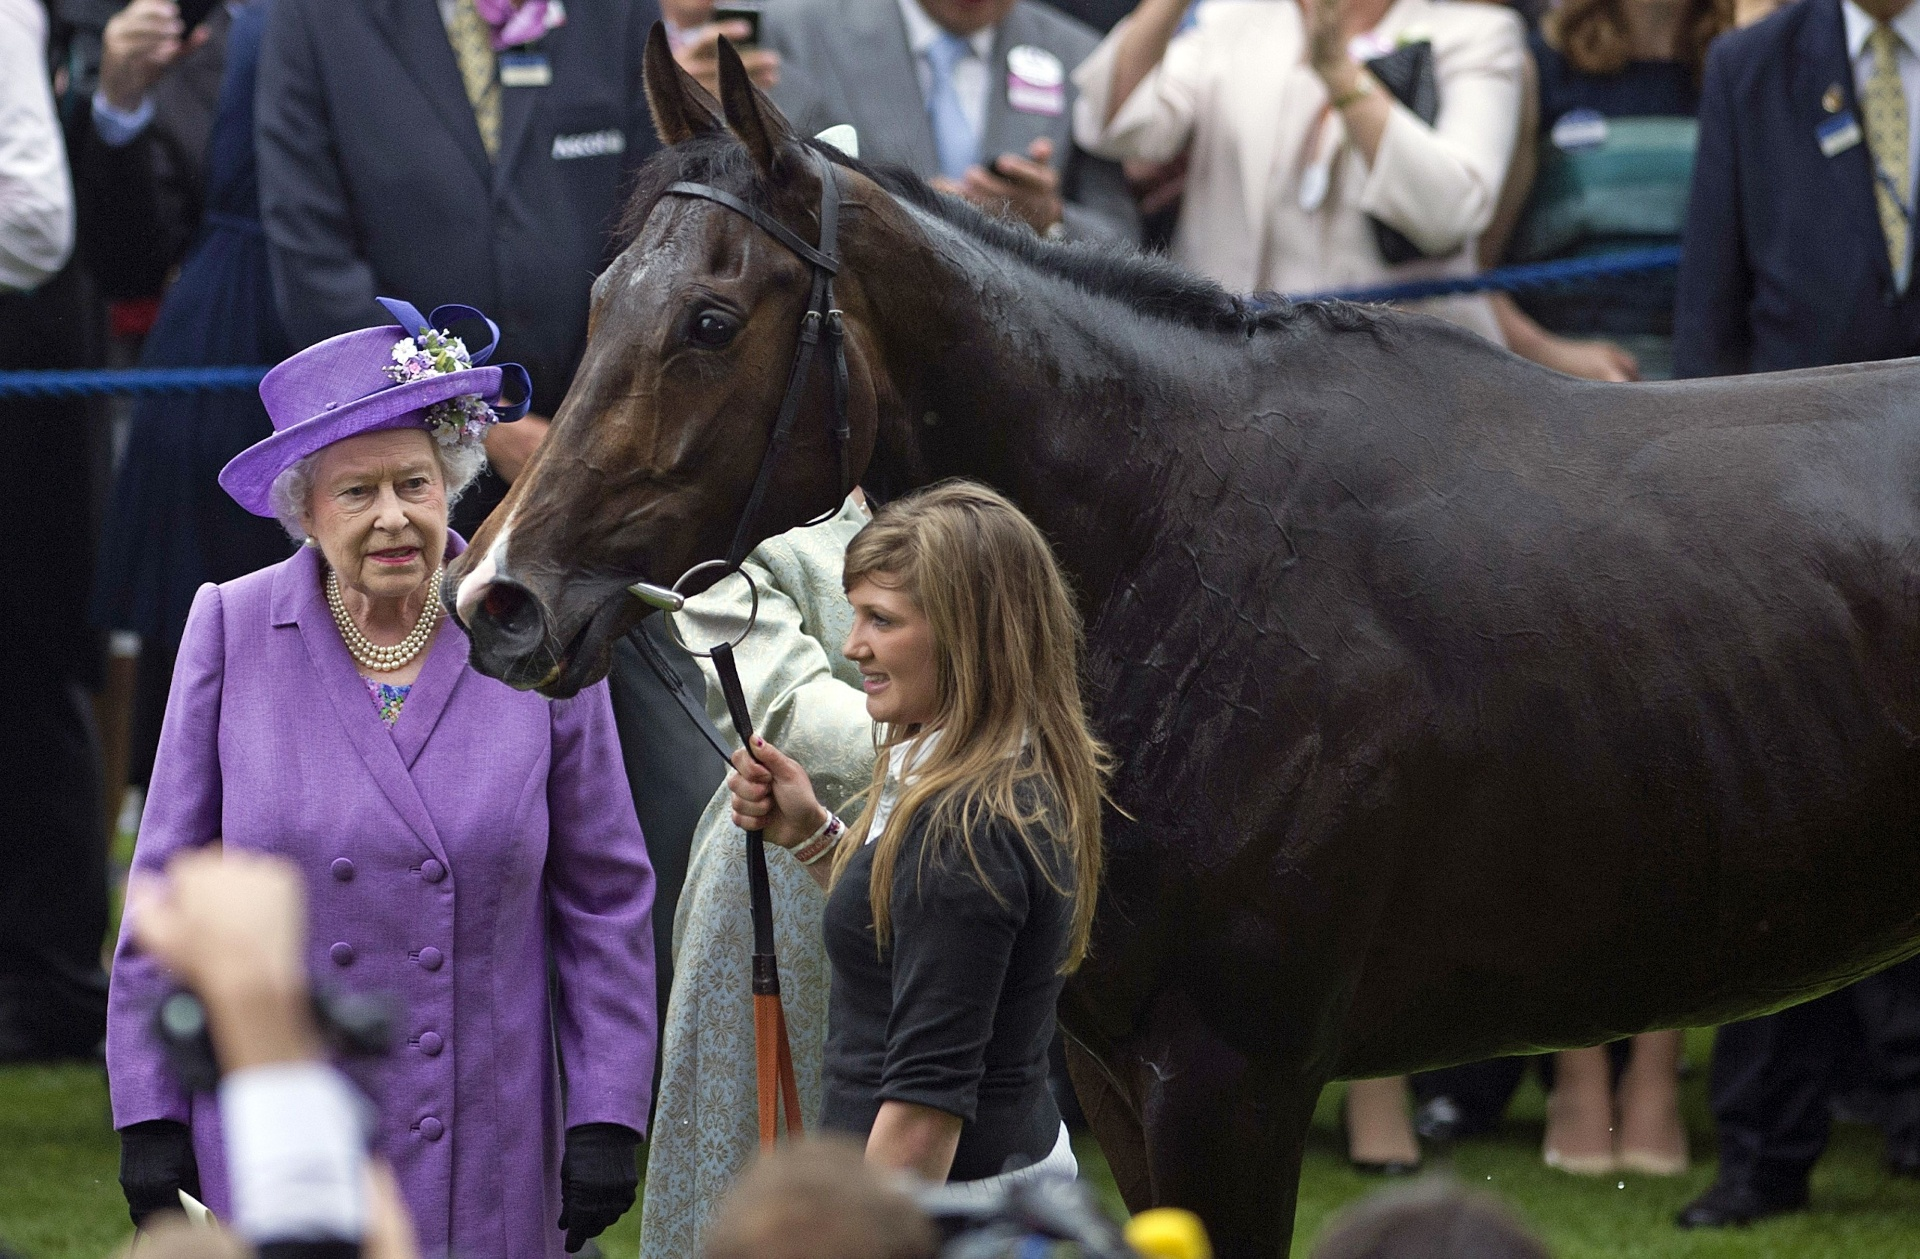 Rainha Elizabeth II, dona do cavalo Estimate, posa ao lado do animal que foi flagrado no exame antidoping por causa de morfina